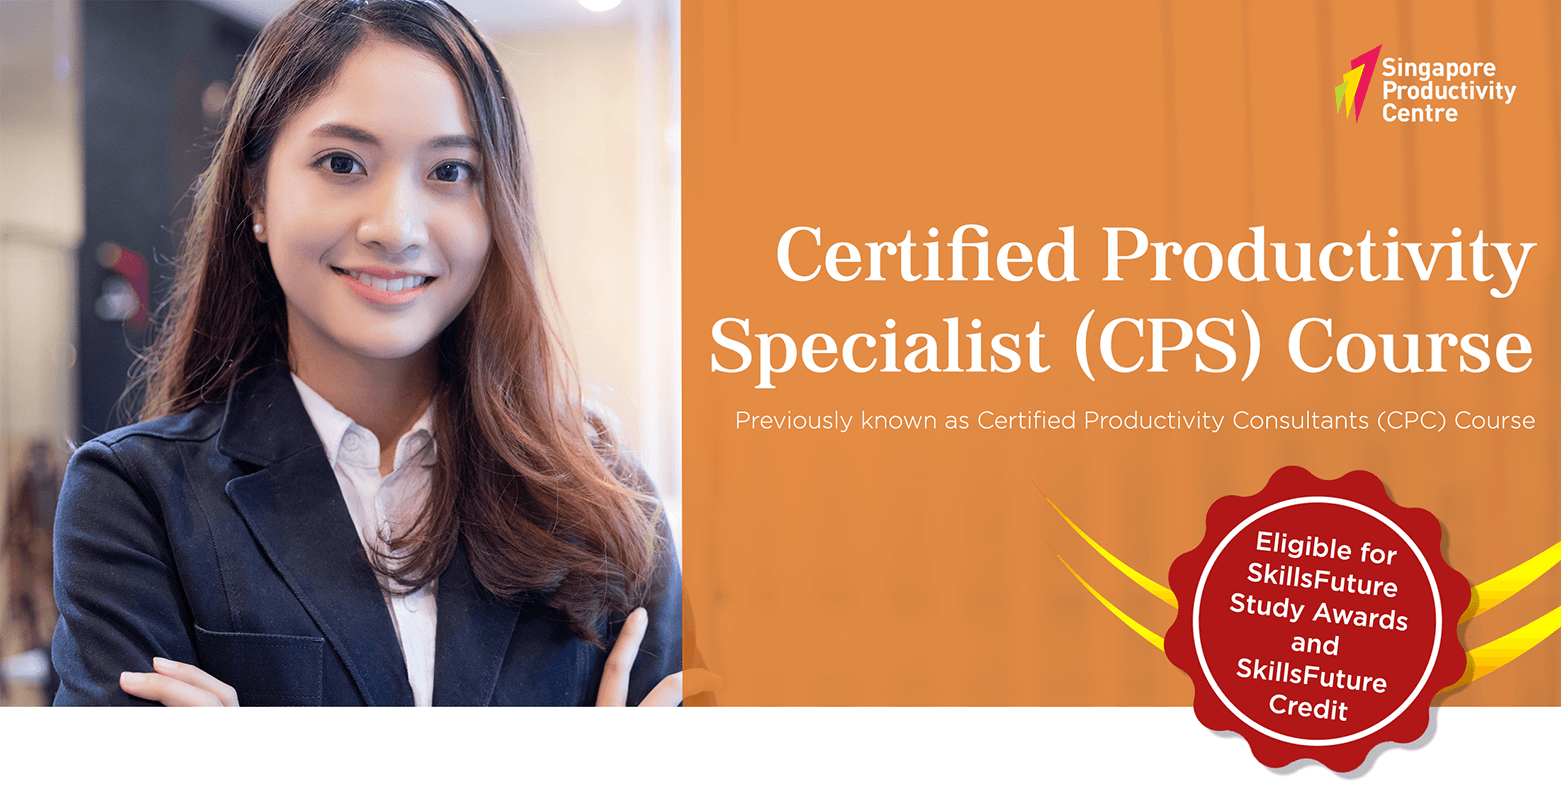 Certified Productivity Specialist (CPS) Course